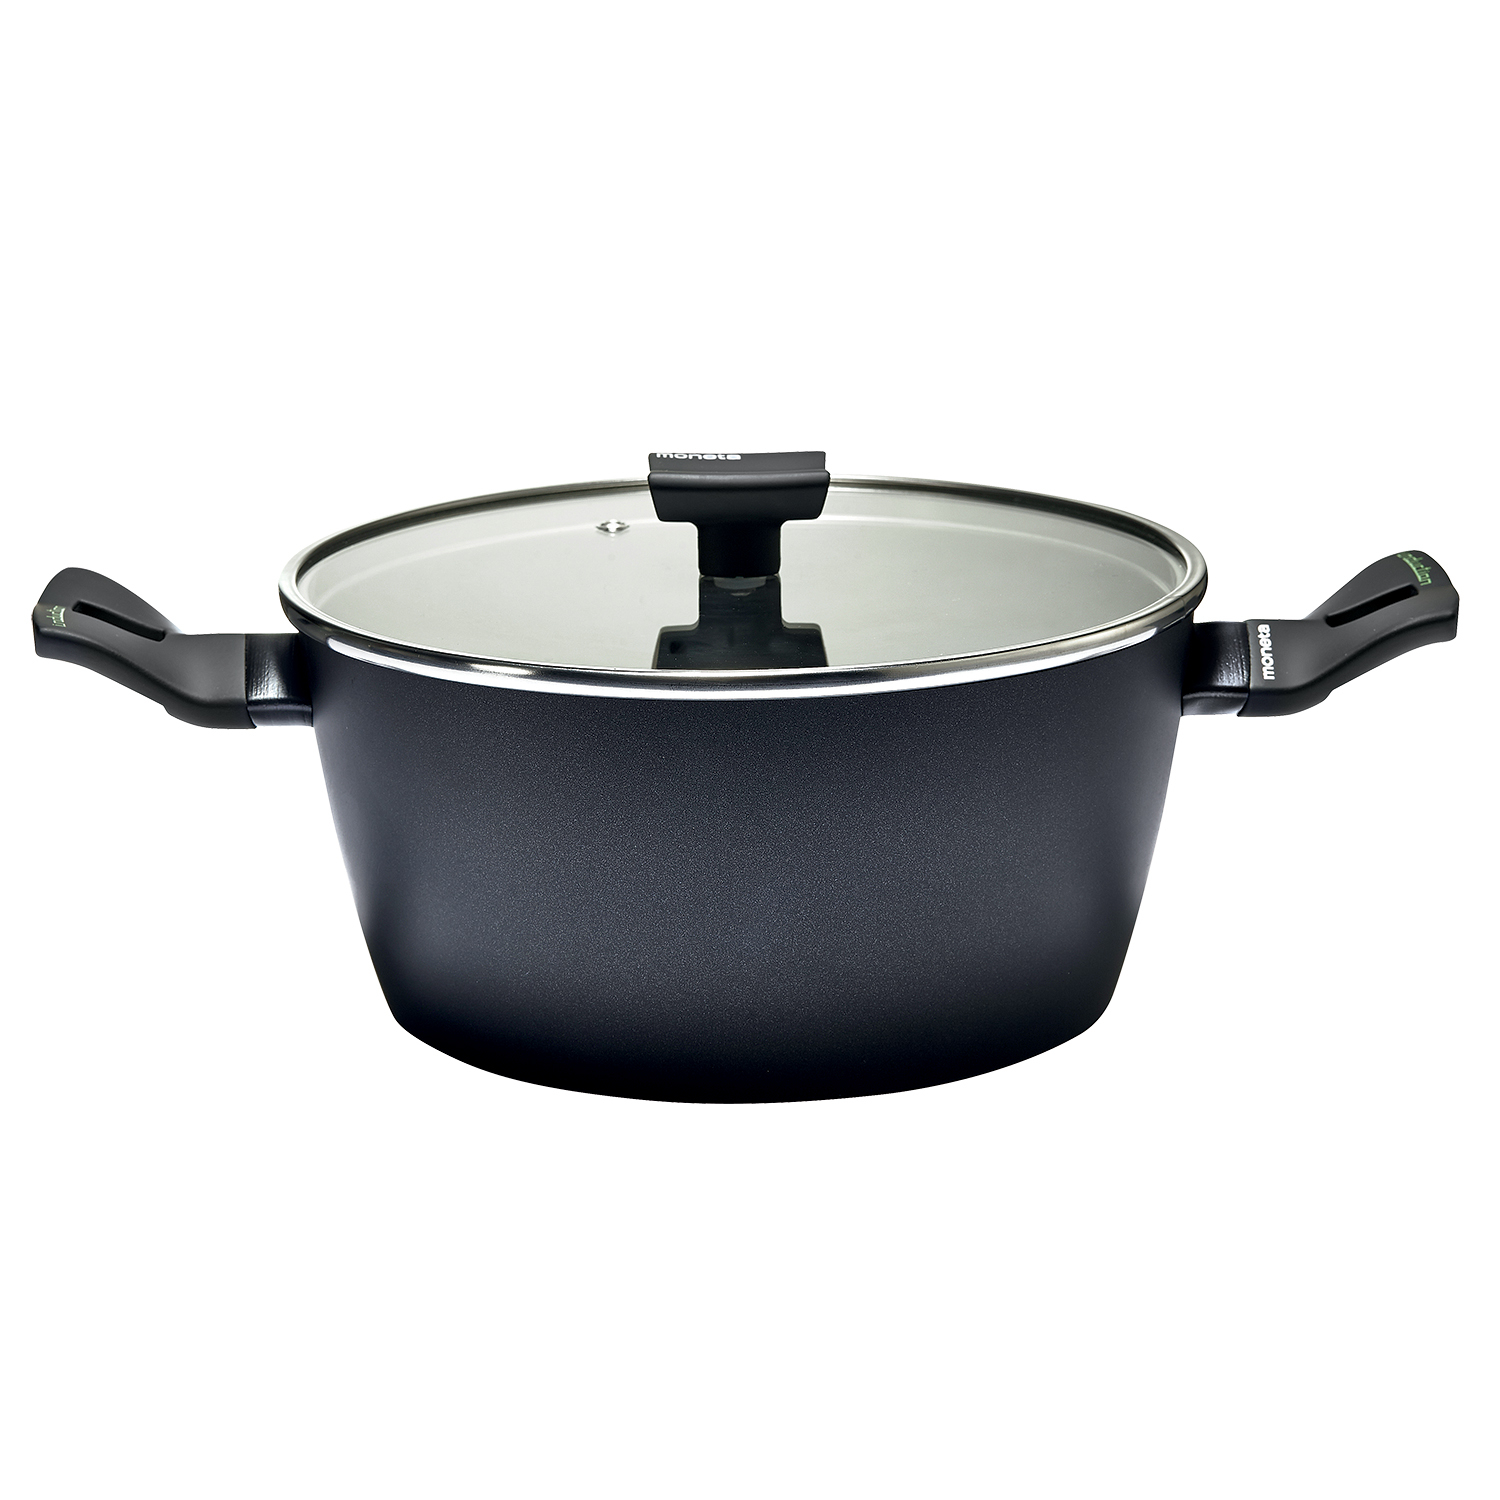 Moneta Nova Induction Covered 3.5 Quart Dutch Oven